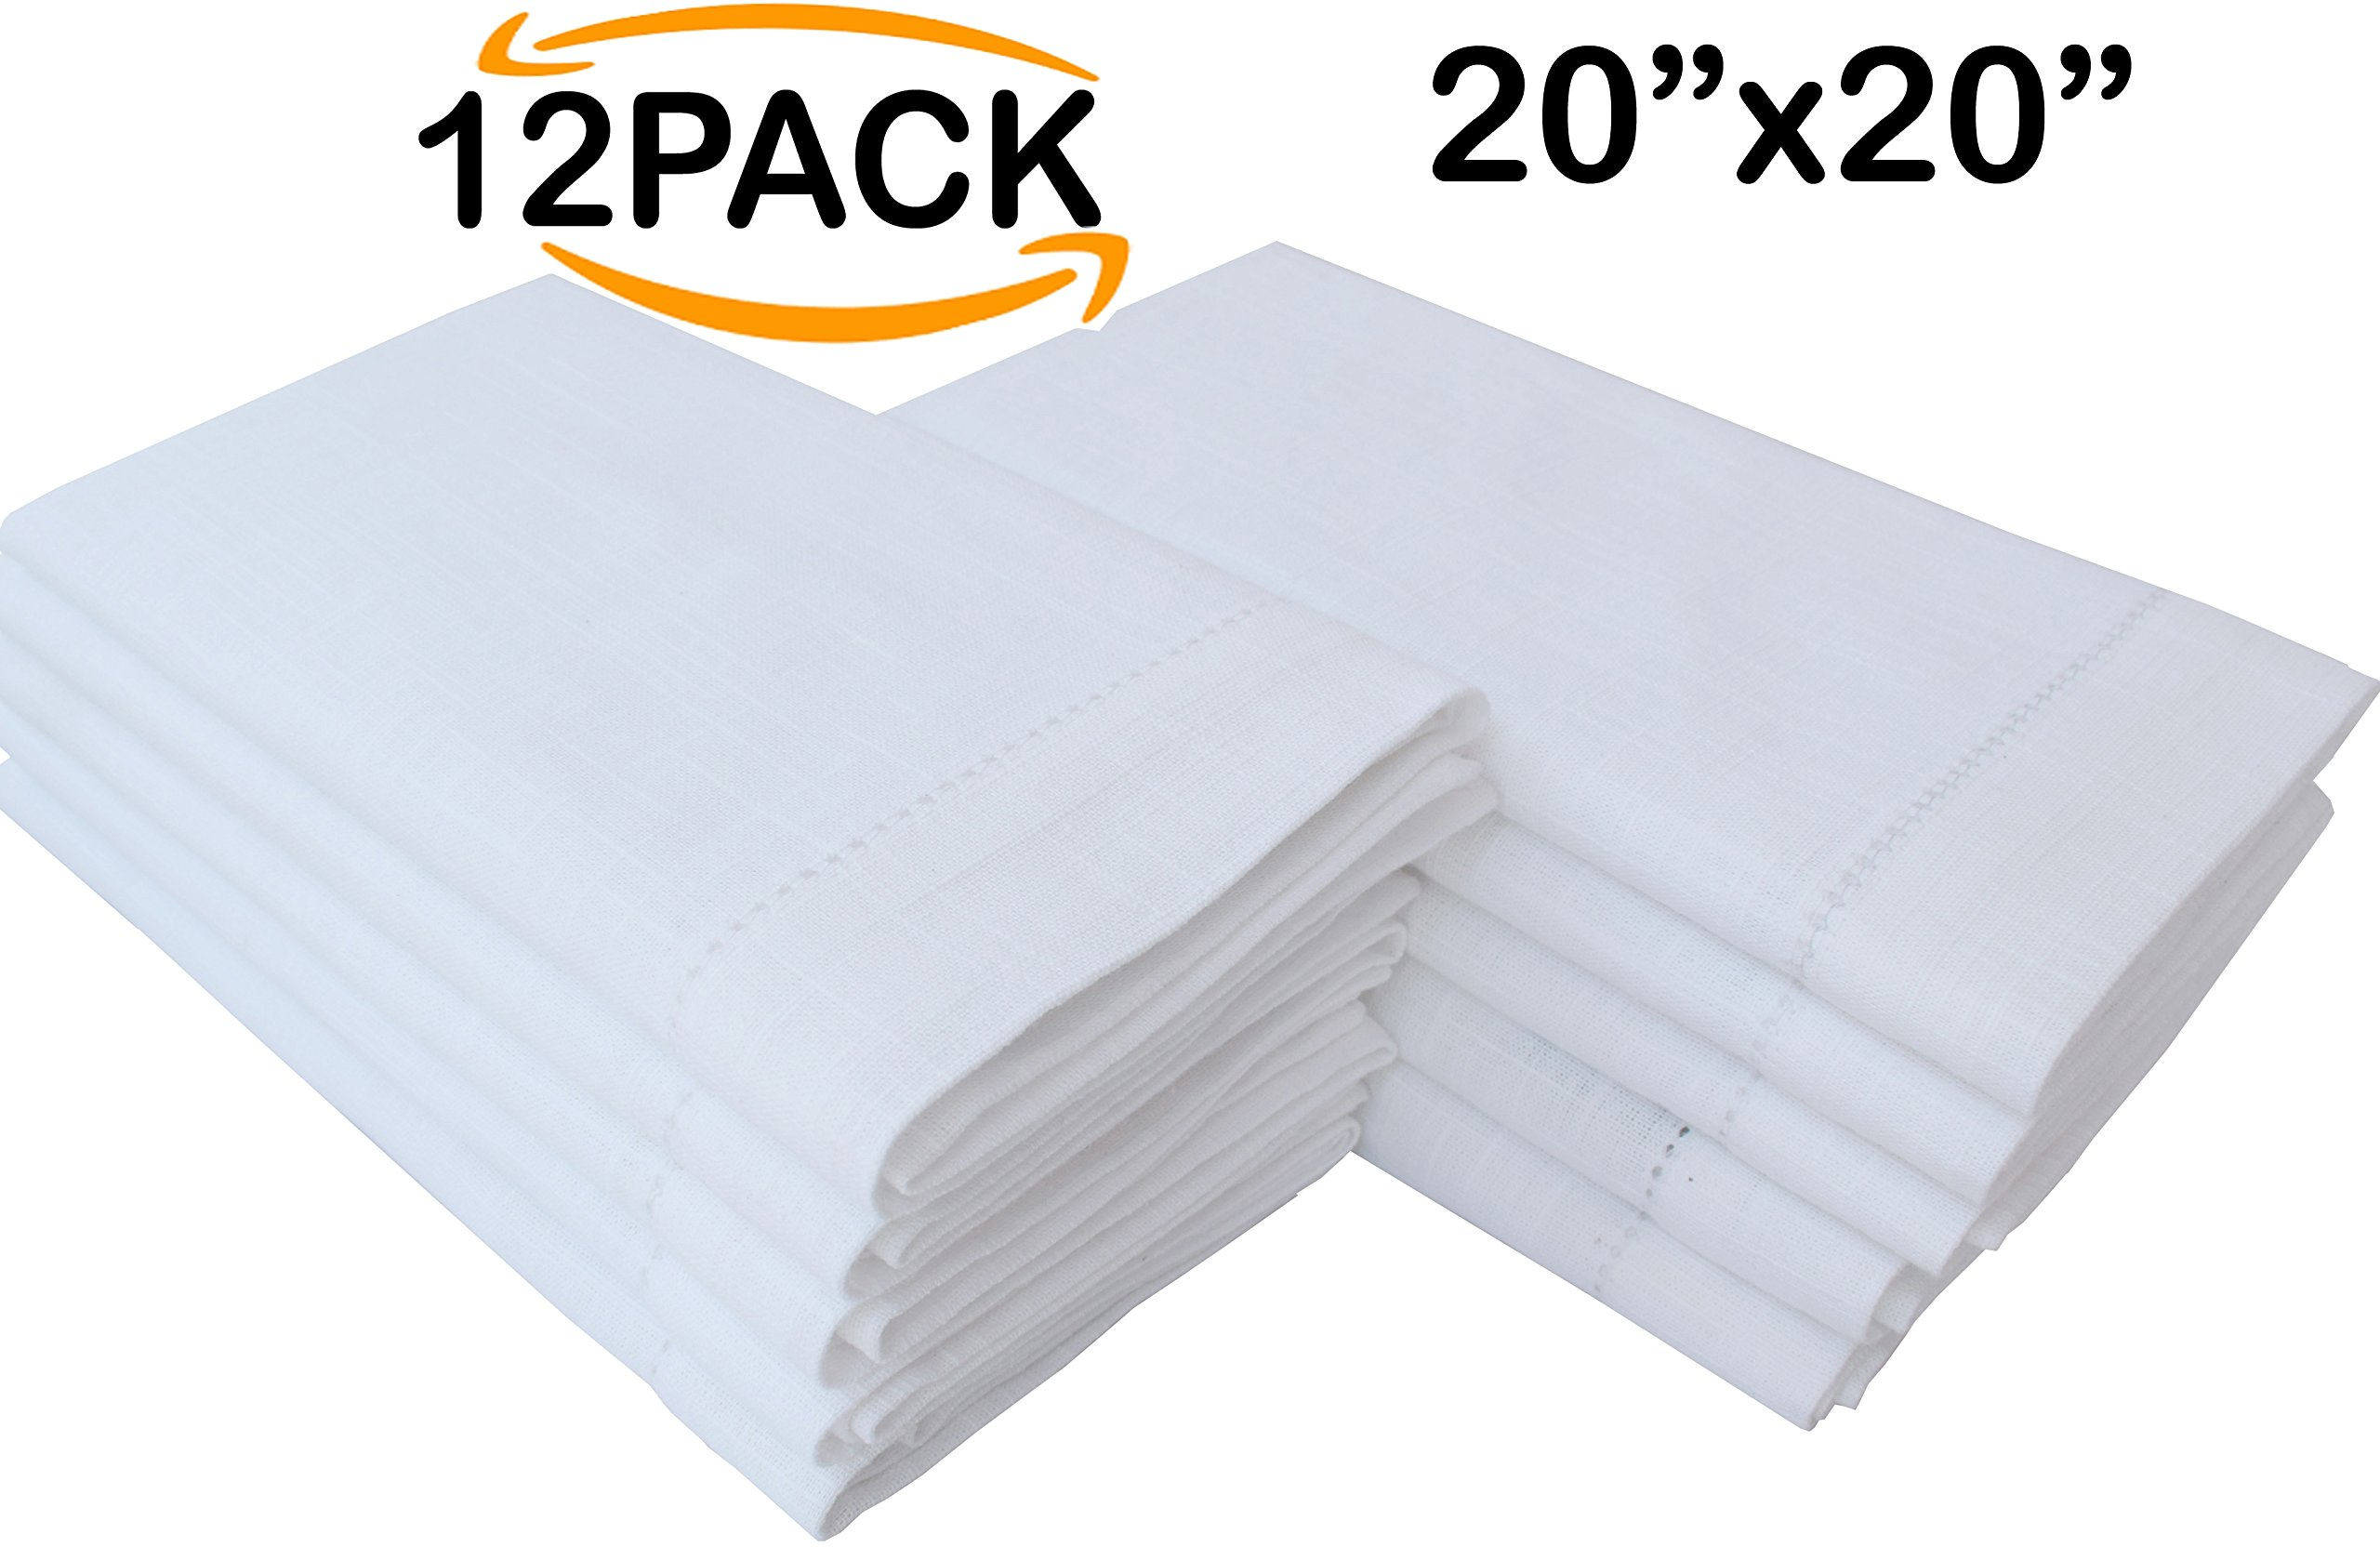 Linen Clubs 12-Piece Handmade Ladder Lace Hemstitched Egyptian Slub Cotton Linen 20-Inch-by-20-Inch Napkins, White